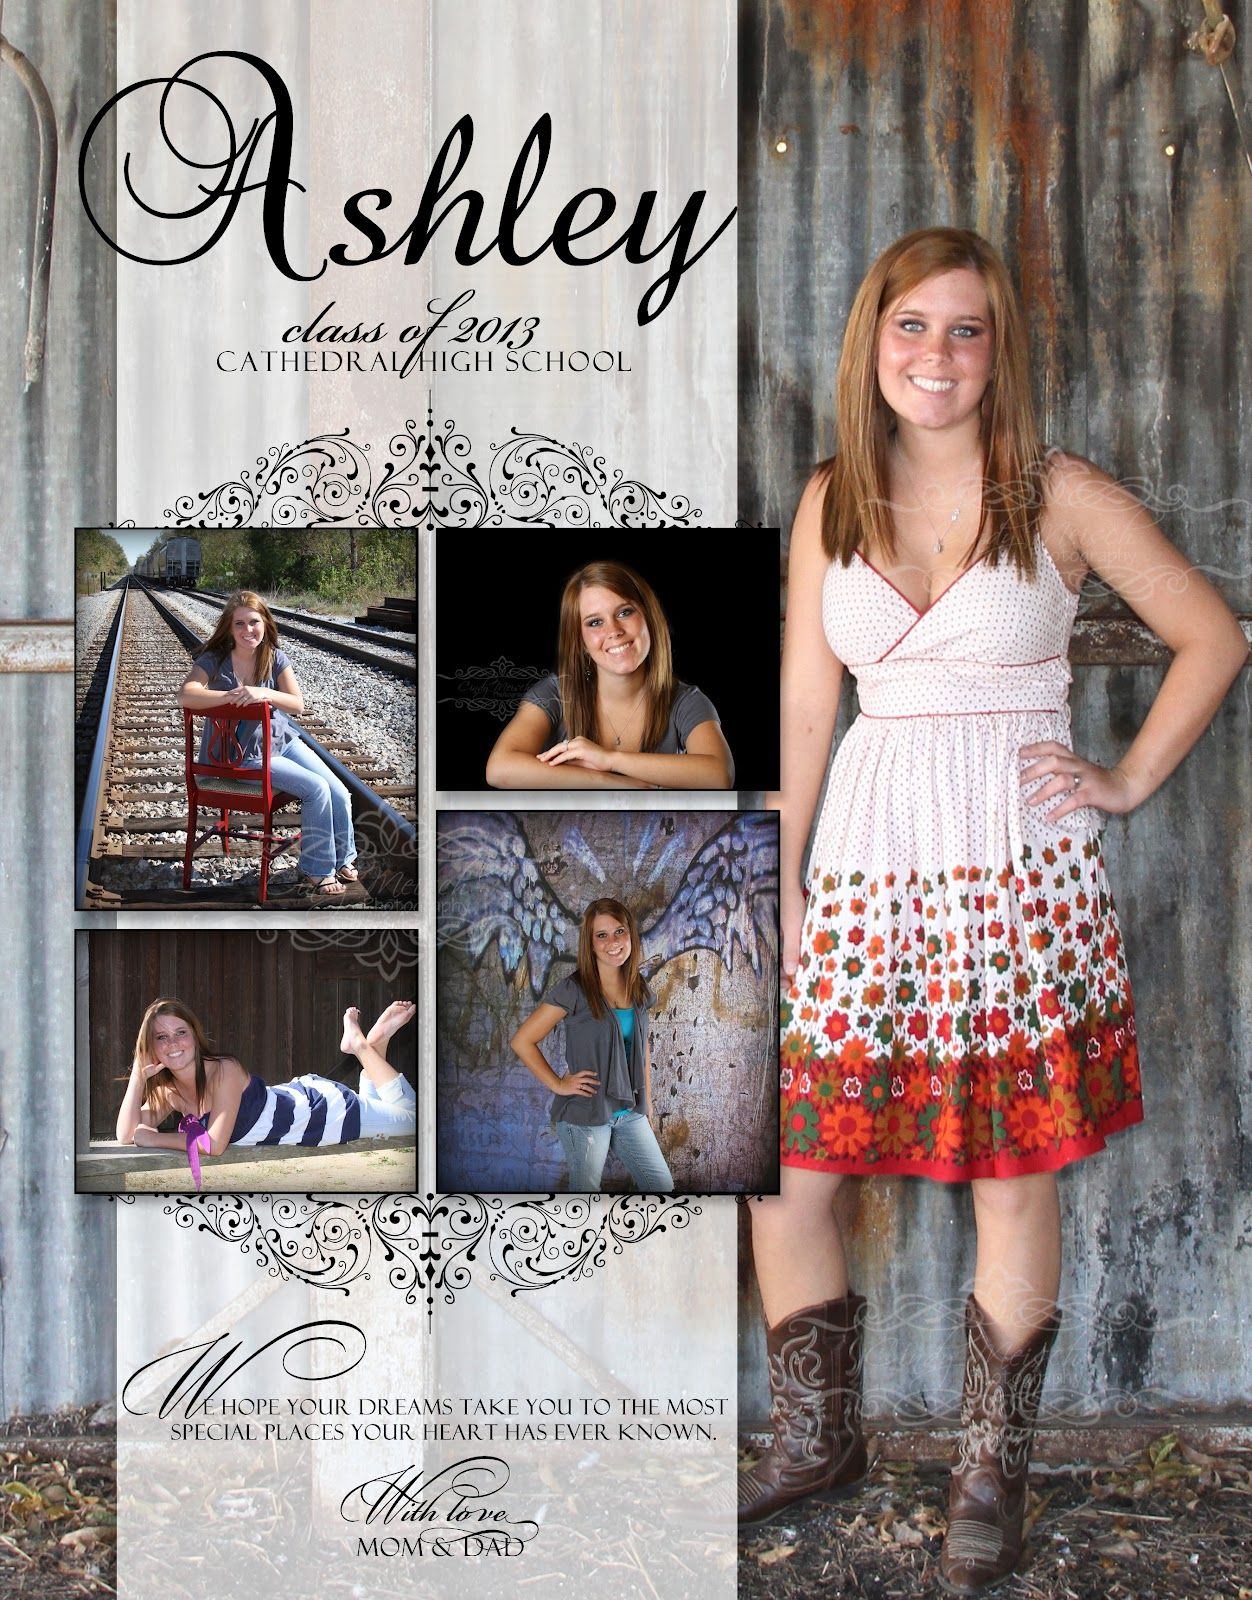 Pin by Andrea Lester on yearbook ideas | Pinterest | Yearbooks ...